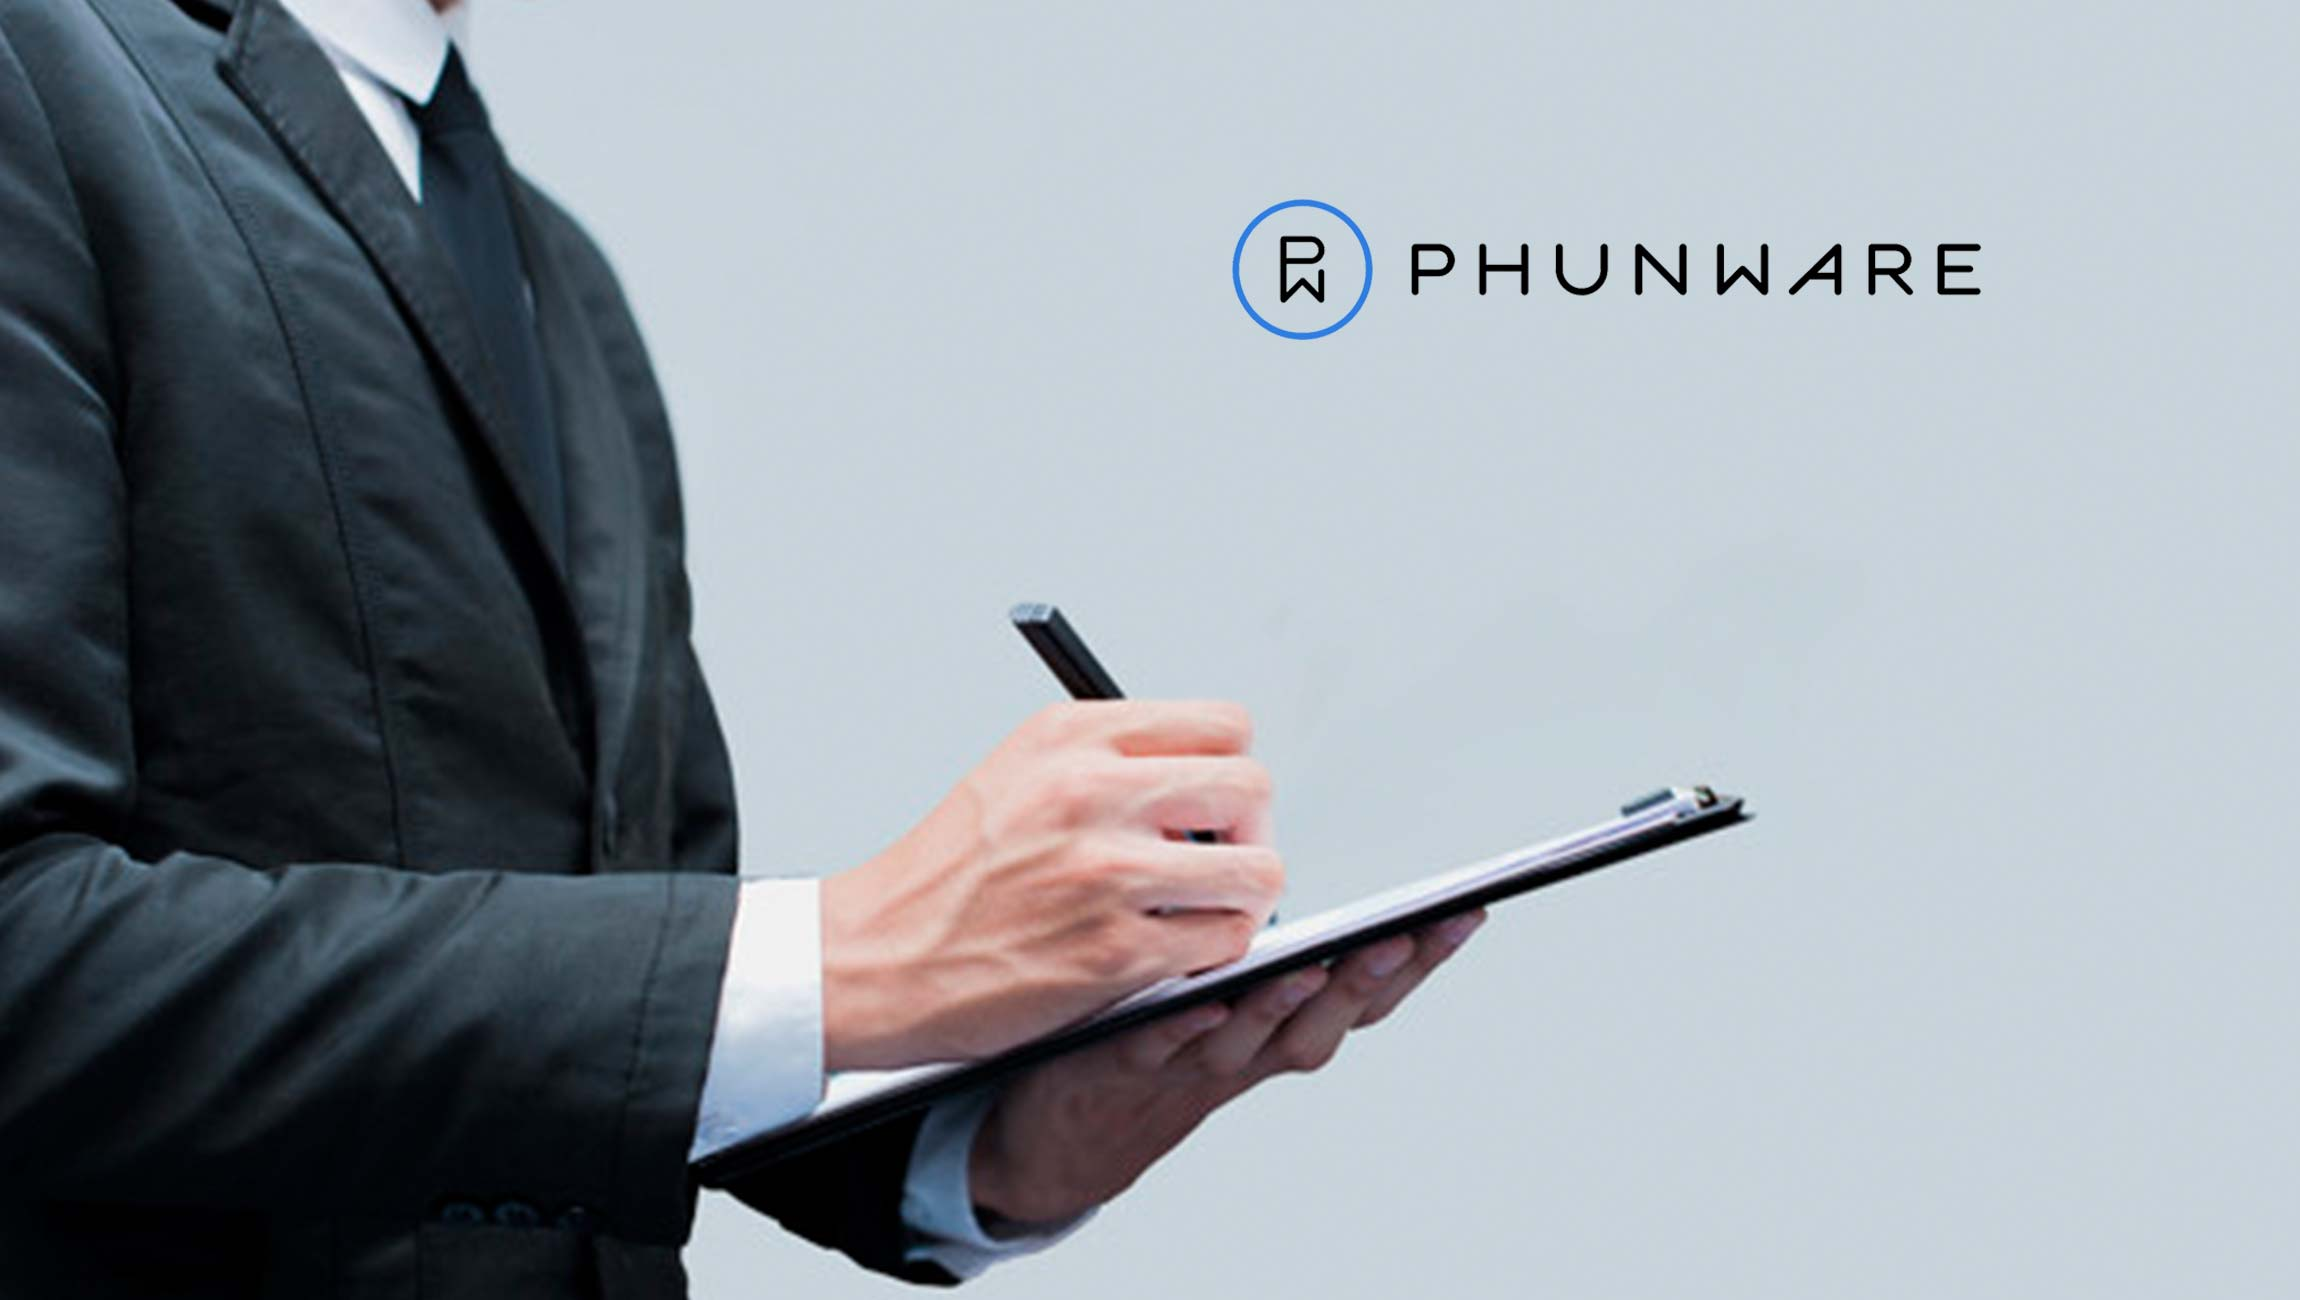 """Phunware Releases """"PhunWallet"""" Mobile App for Android on Google Play"""